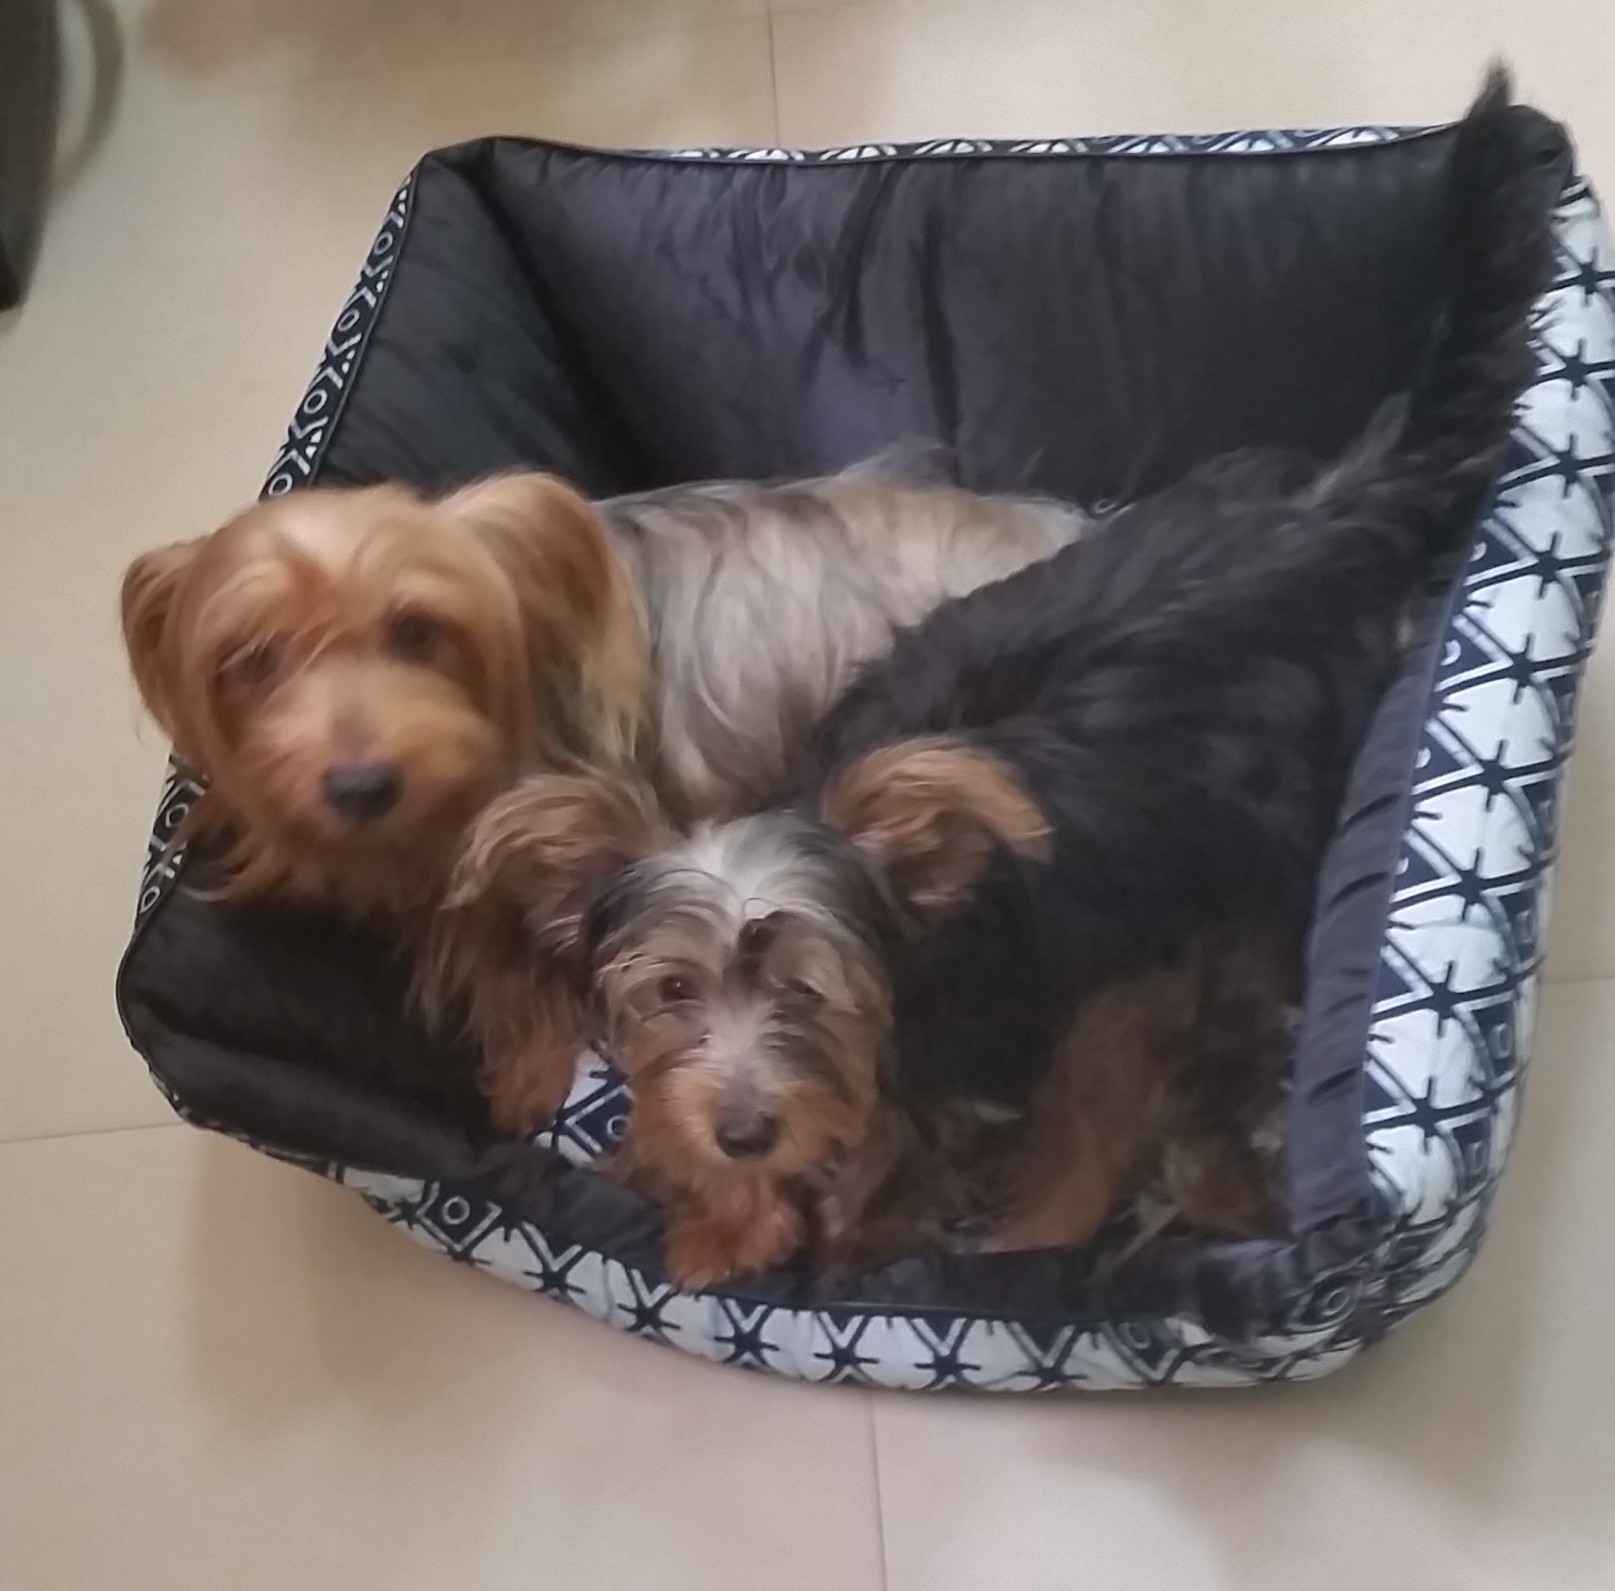 Yorkie at My Pet Place